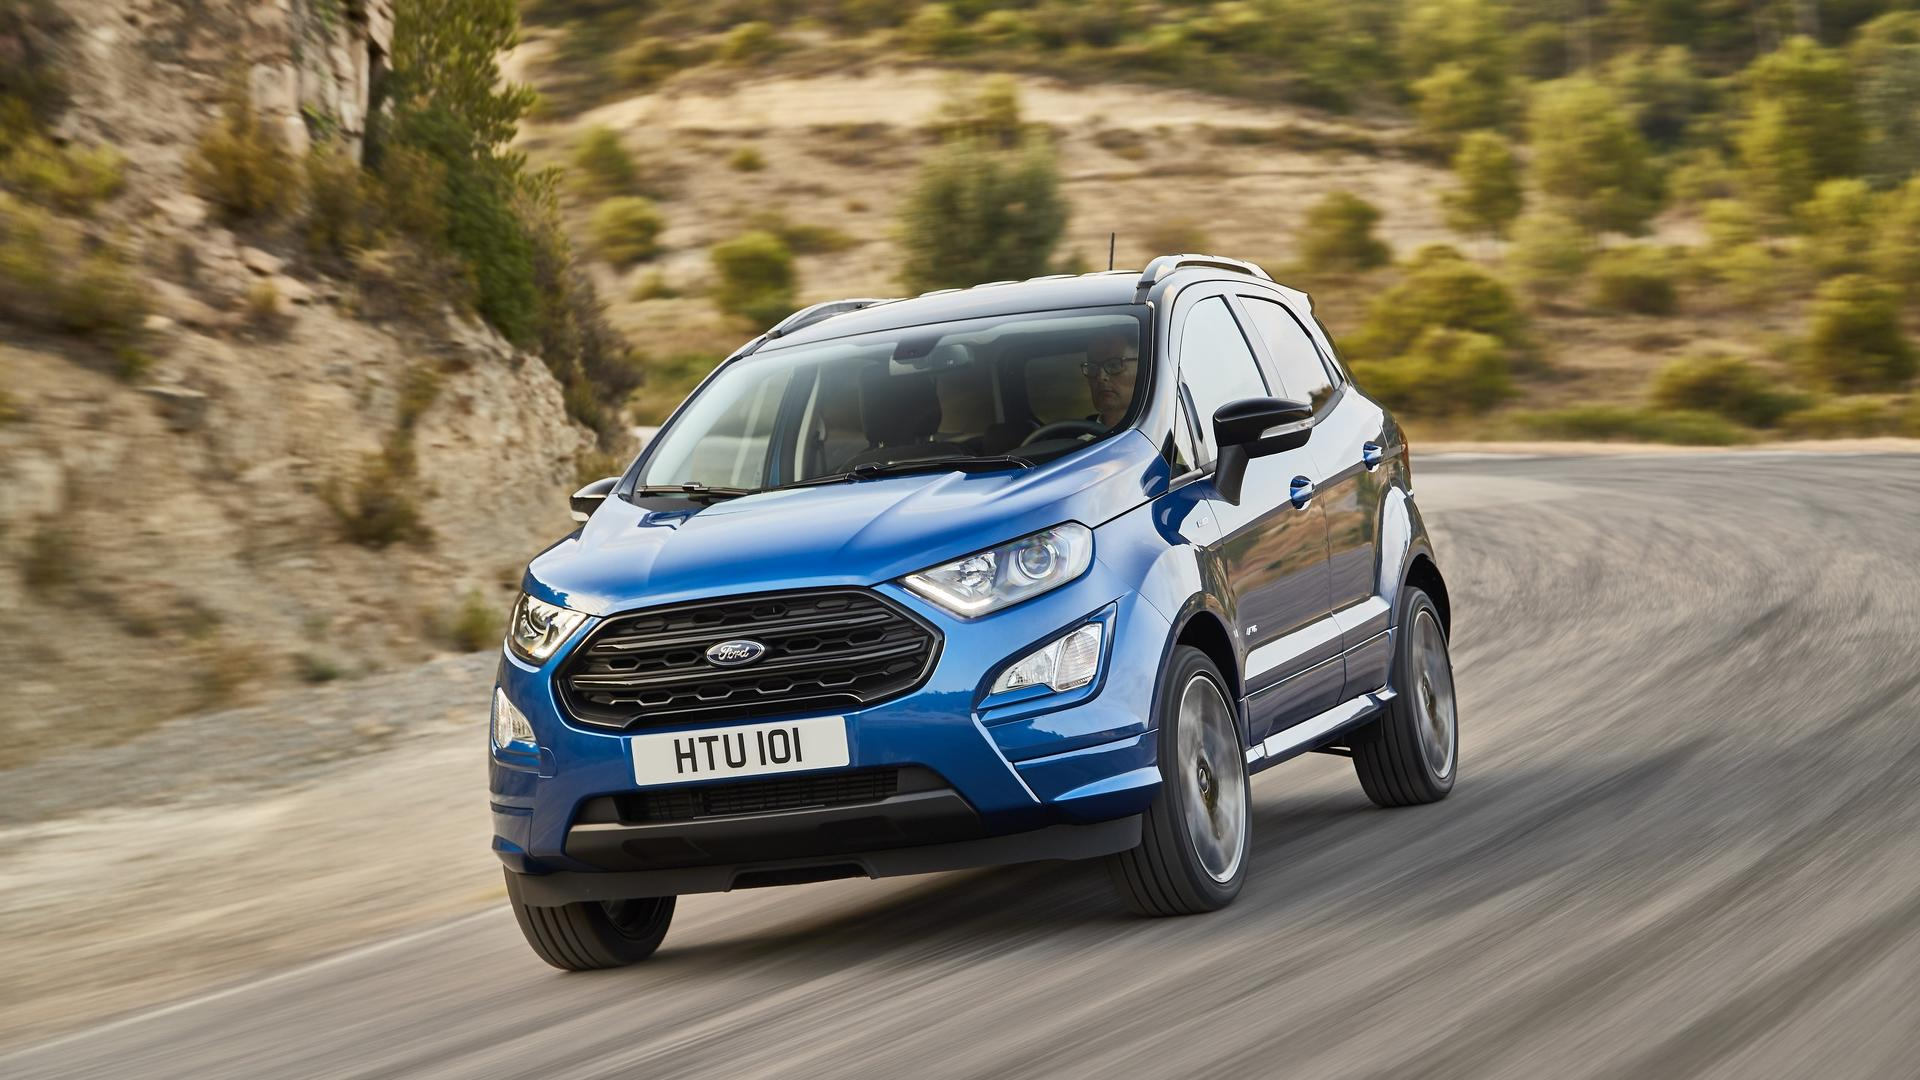 New ford ecosport suv enhances quality technology and capability to deliver more confidence and comfort